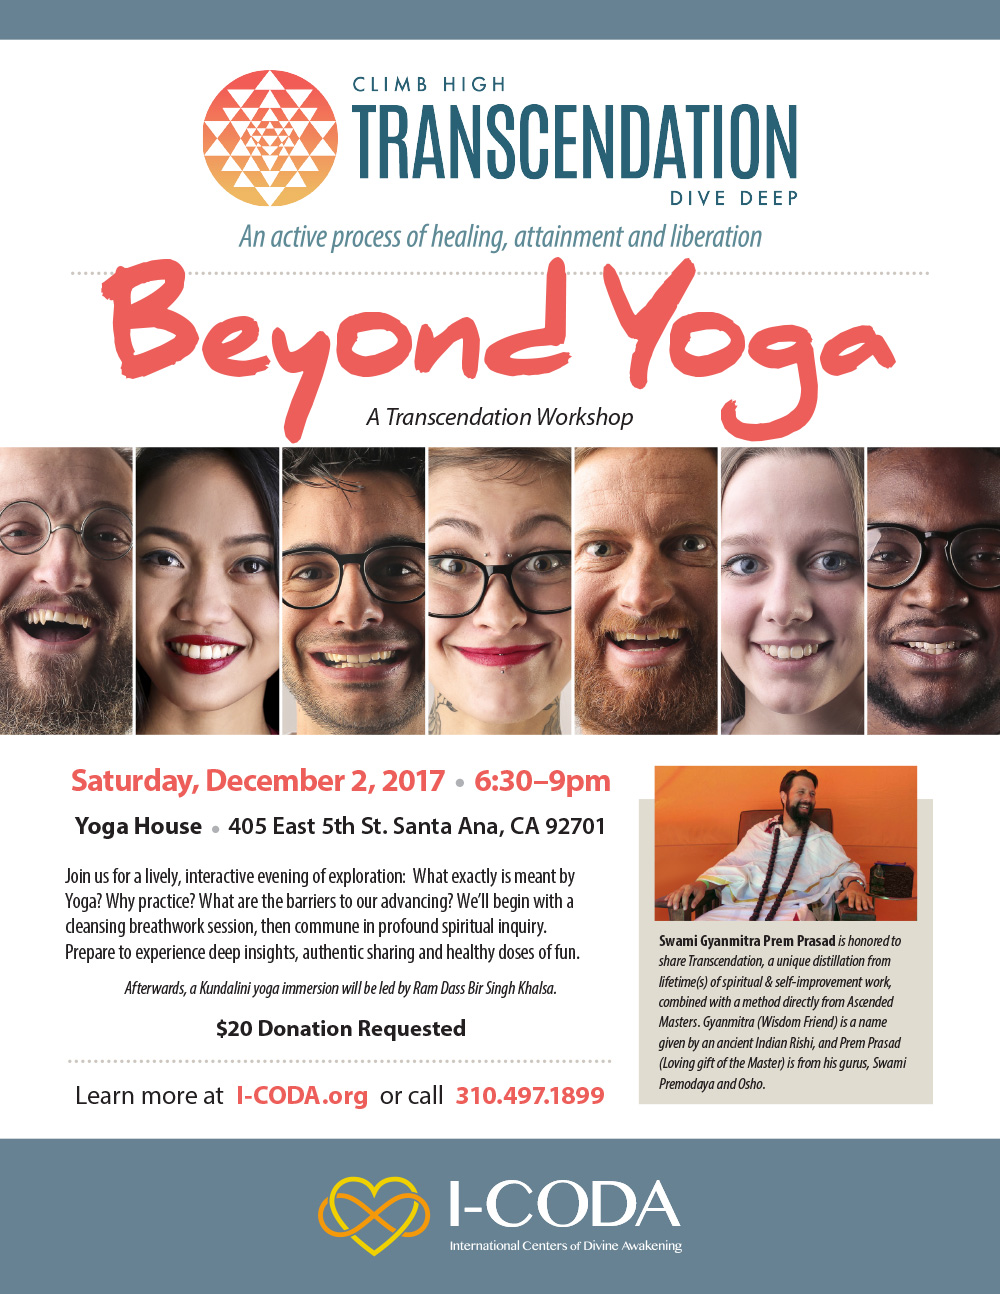 Beyond-Yoga-Nov-2017-.jpg